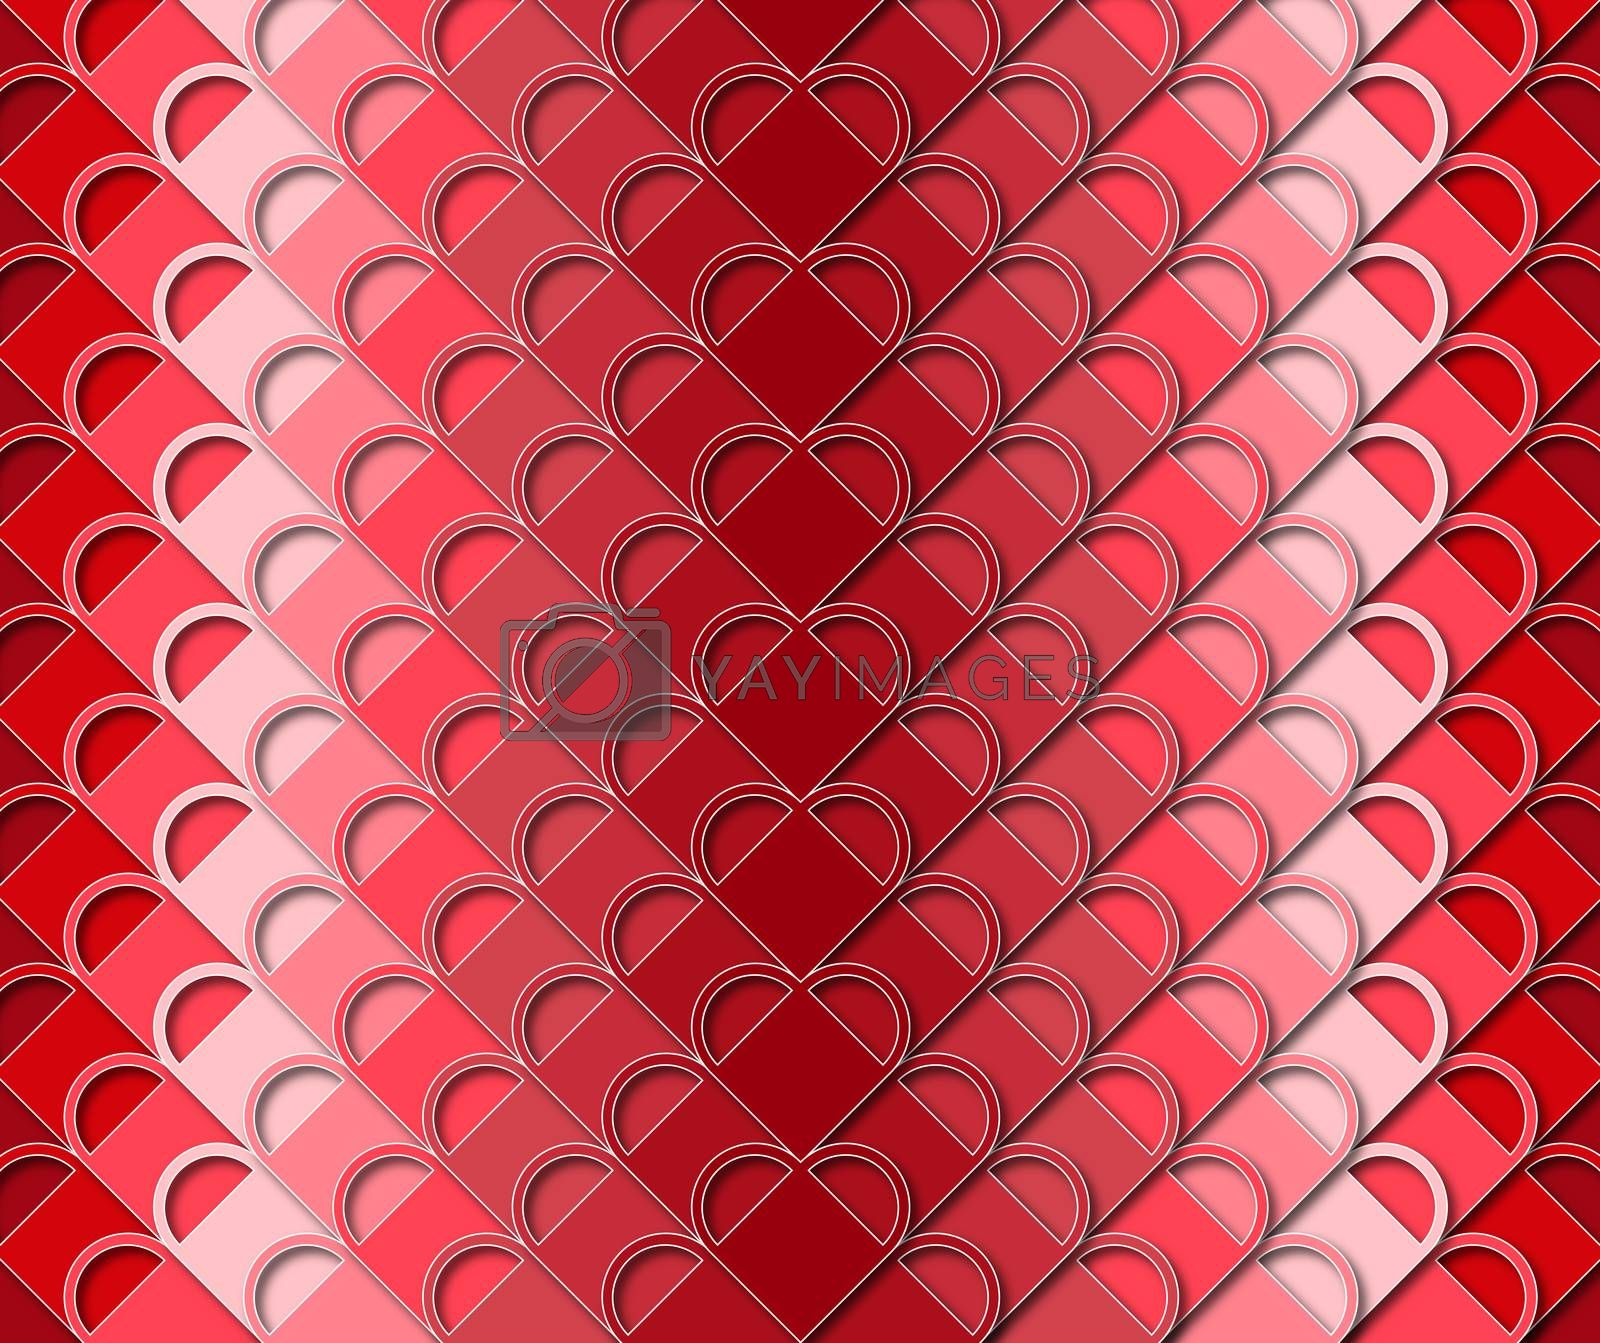 background or fabric the abstract red heart Valentine